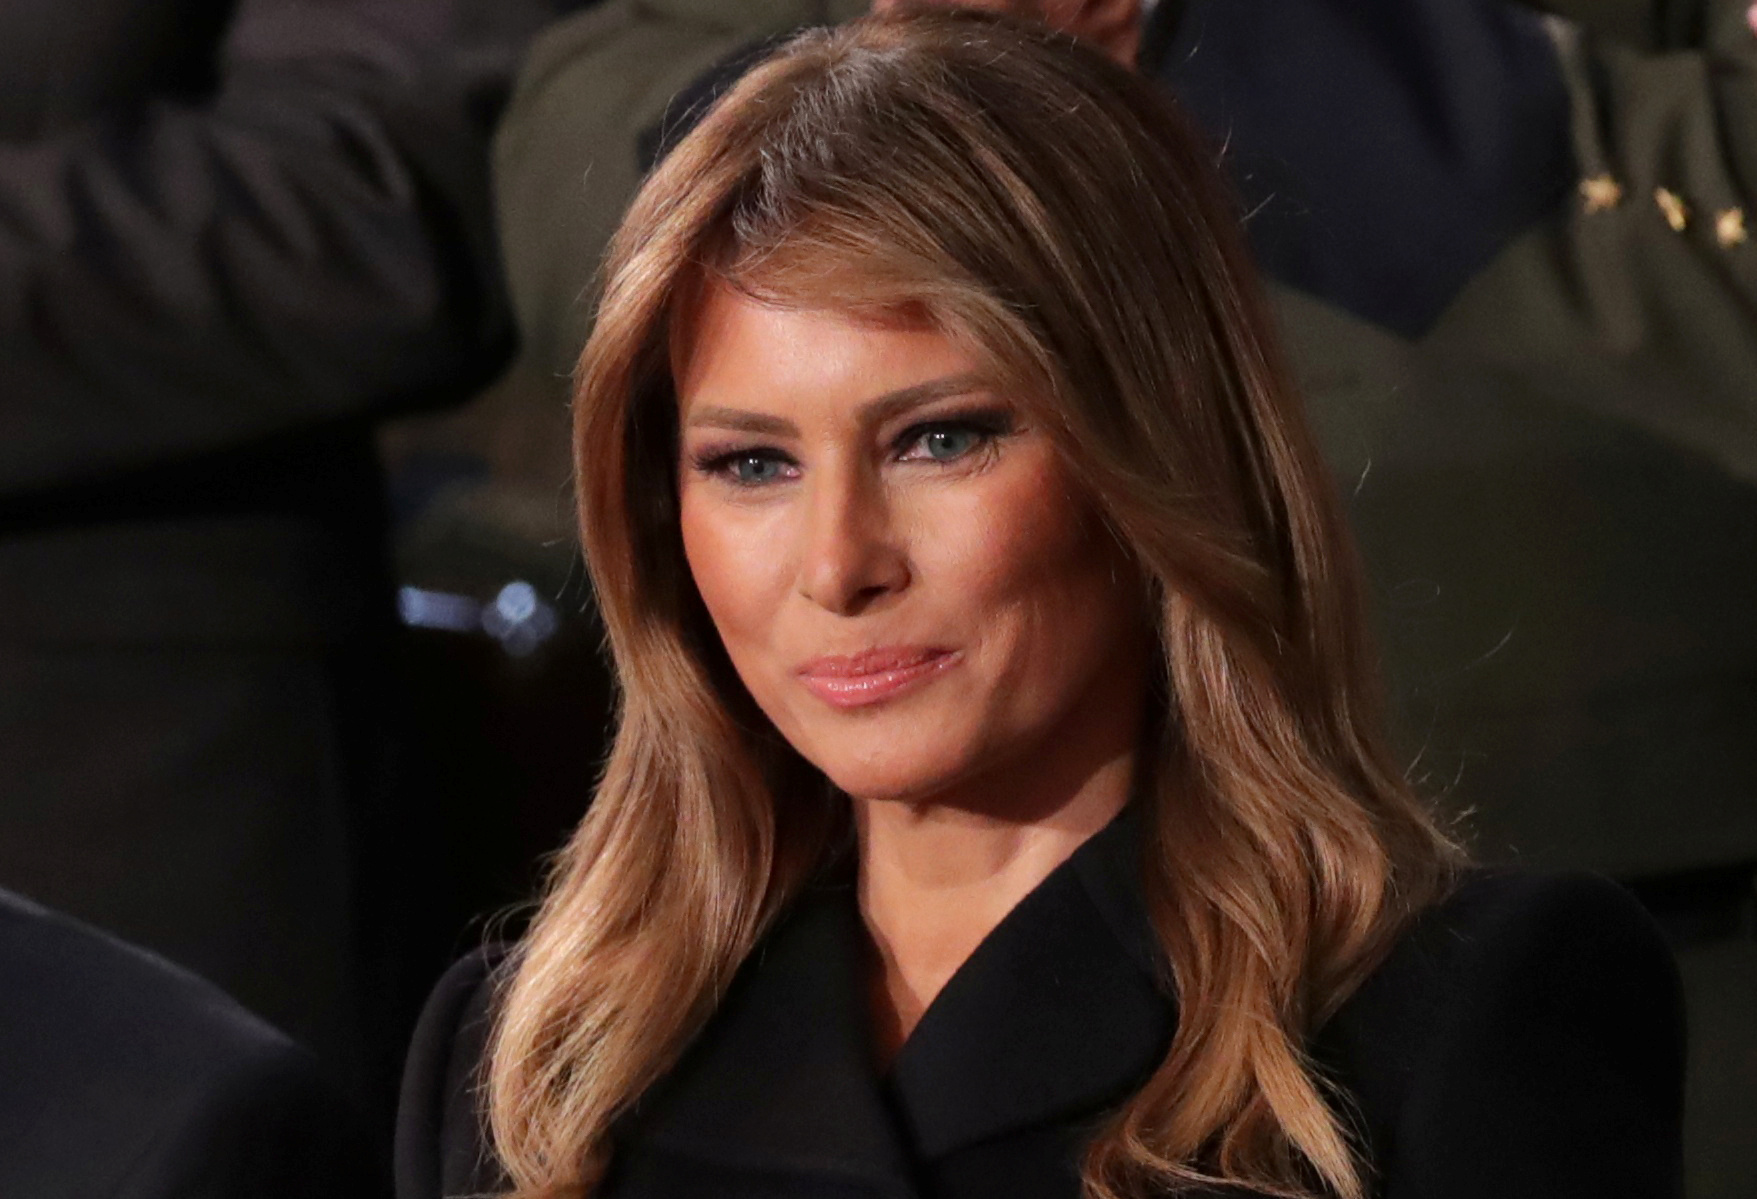 FILE PHOTO: First lady Melania Trump listens to U.S. President Donald Trump's State of the Union address to a joint session of the U.S. Congress in the House Chamber of the U.S. Capitol in Washington, U.S., Feb. 4, 2020. REUTERS/Jonathan Ernst/File Photo